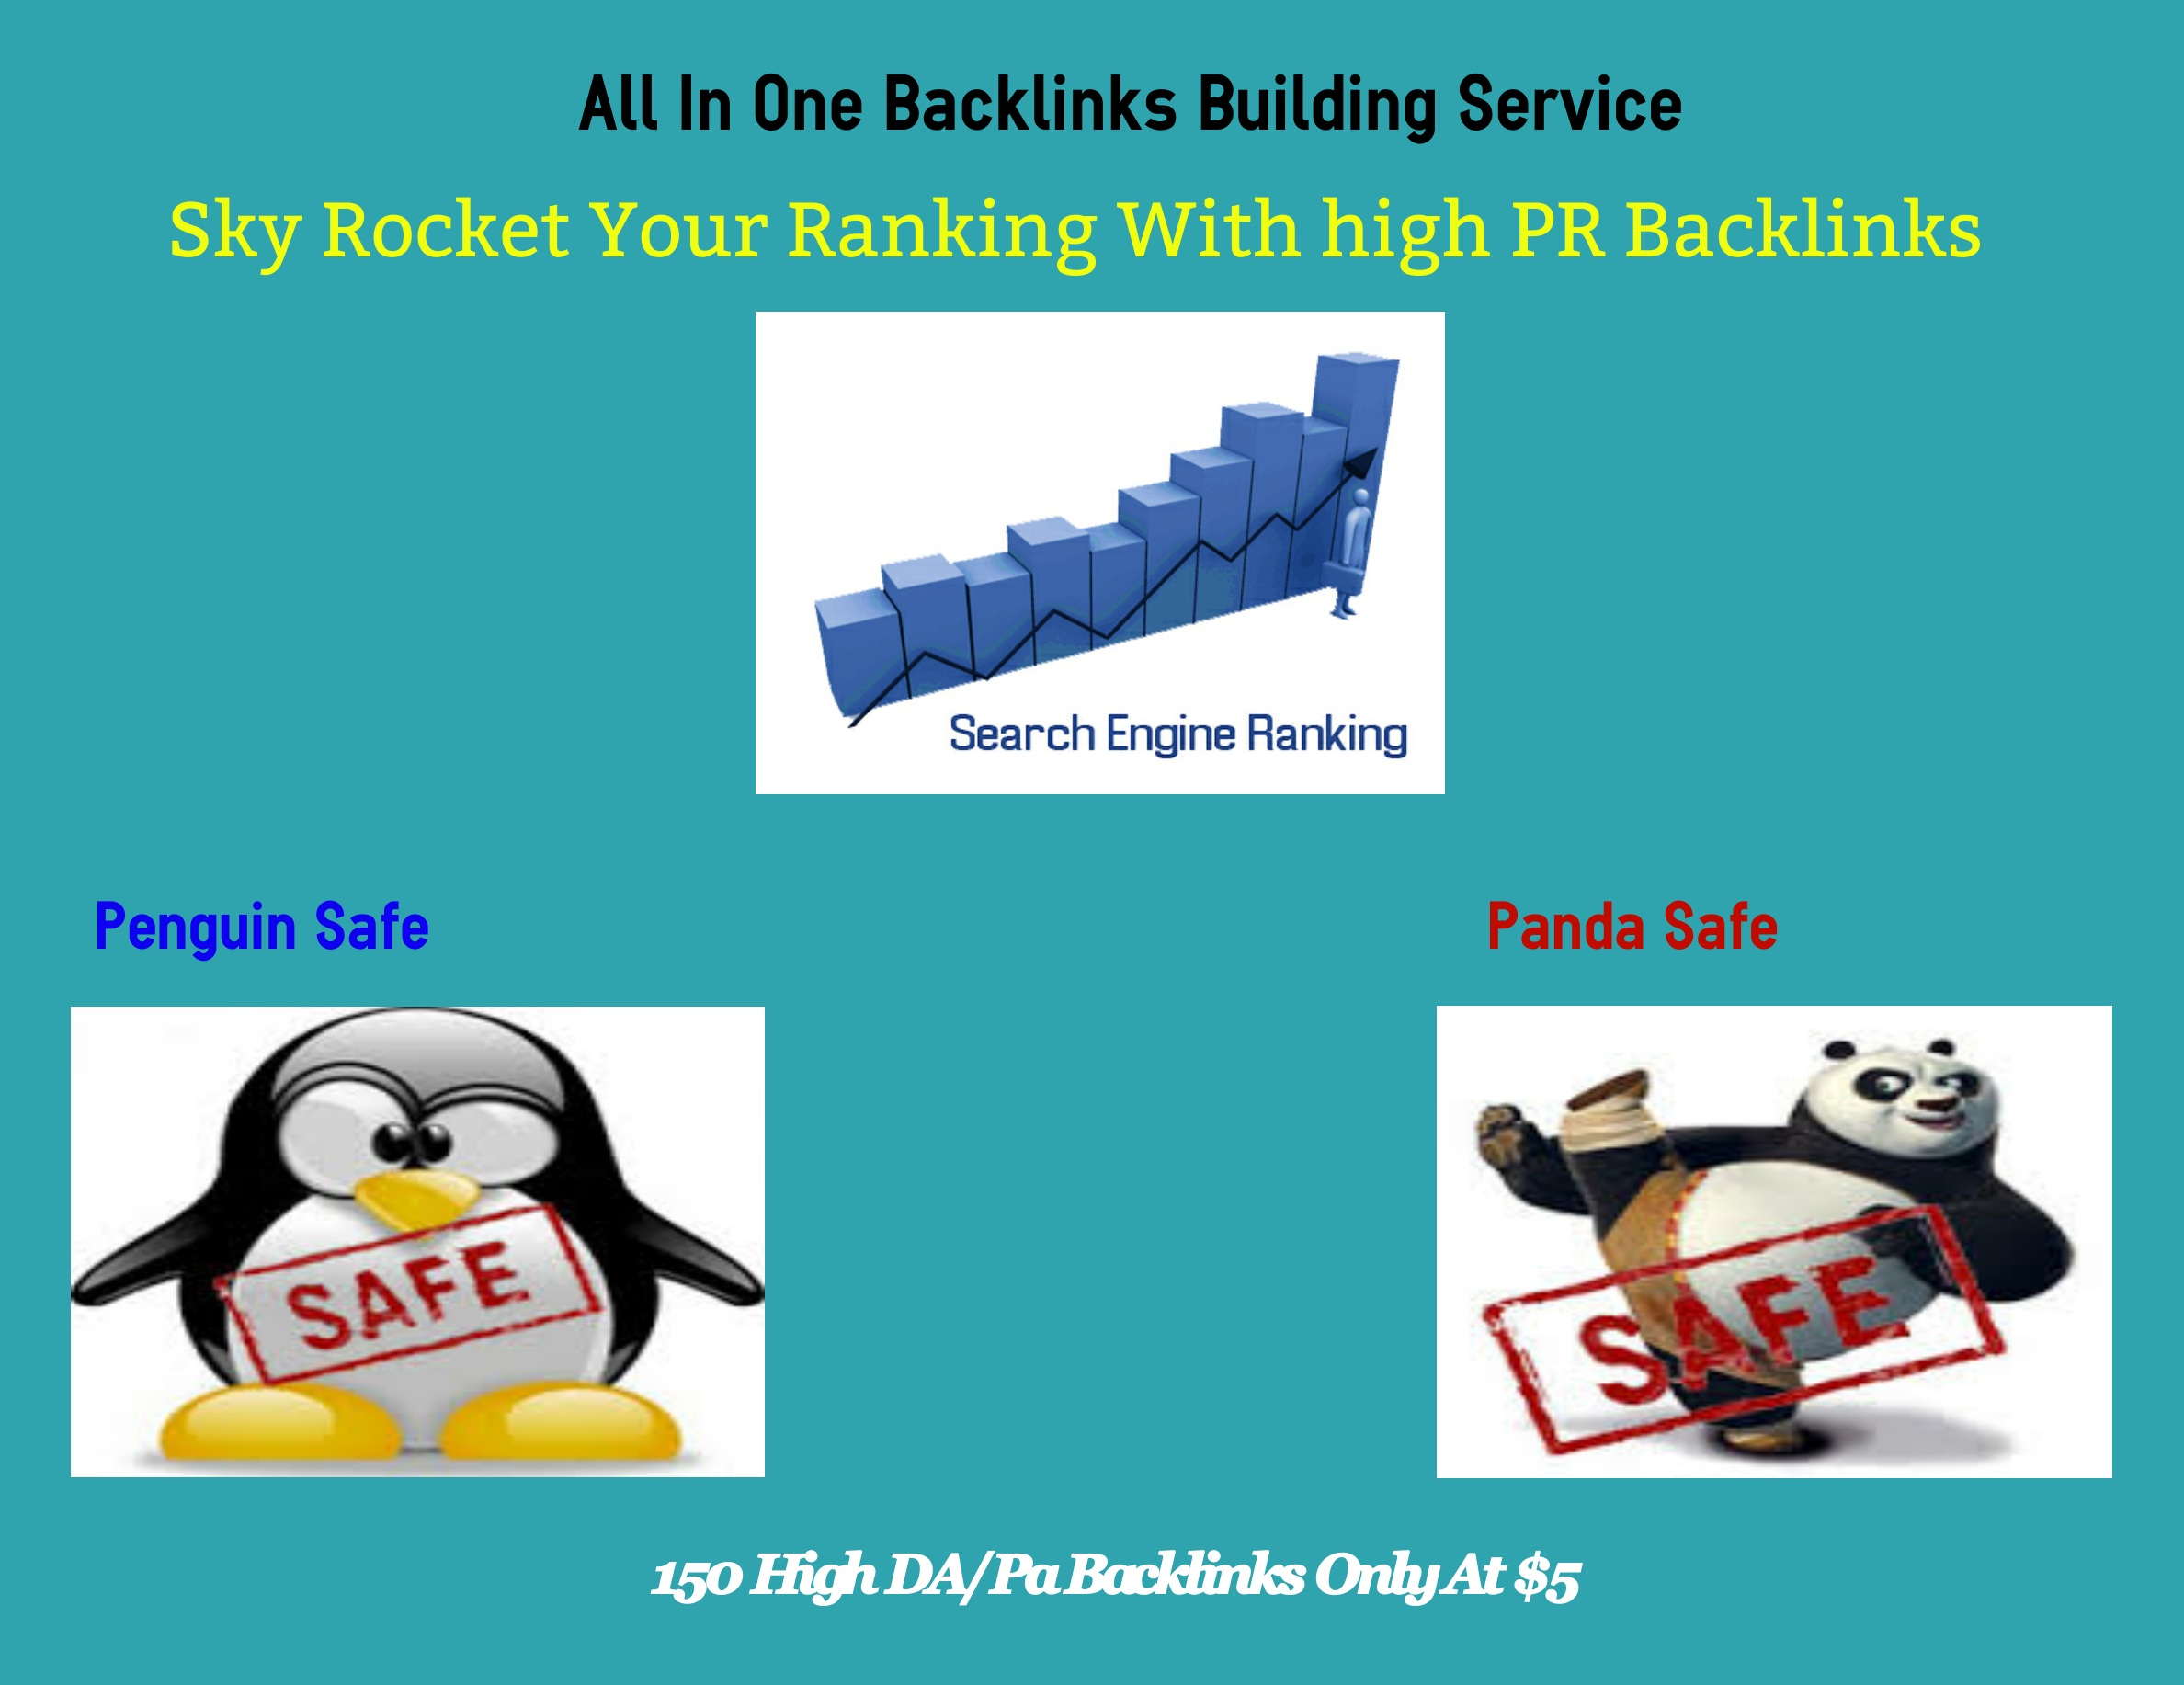 Sky Rocket Your Ranking With 150 High PR Backlinks